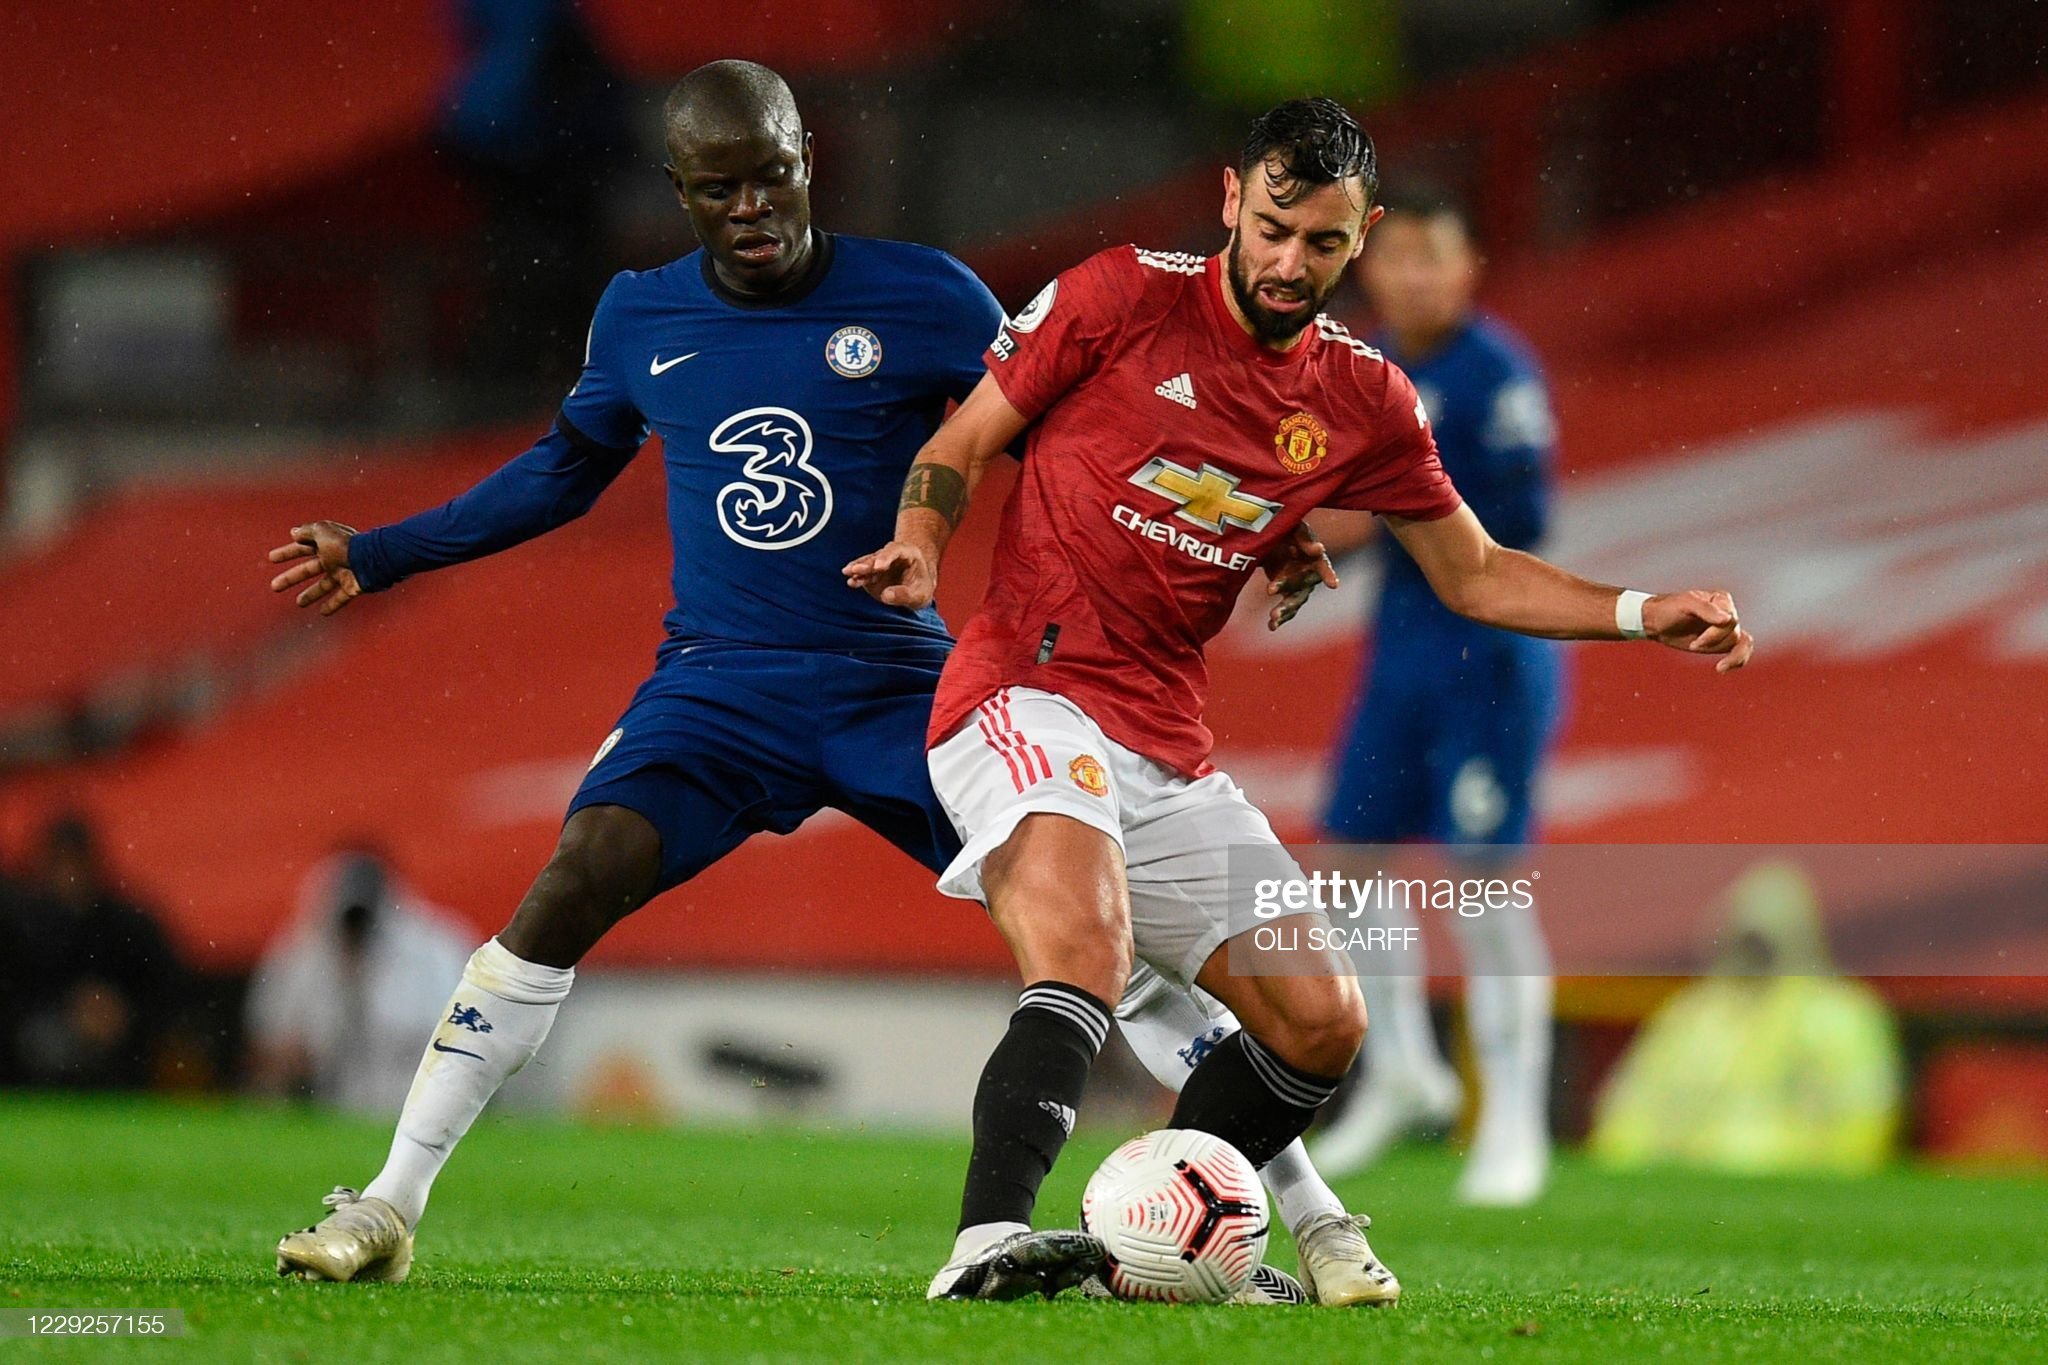 Chelsea vs Manchester United preview, prediction and odds